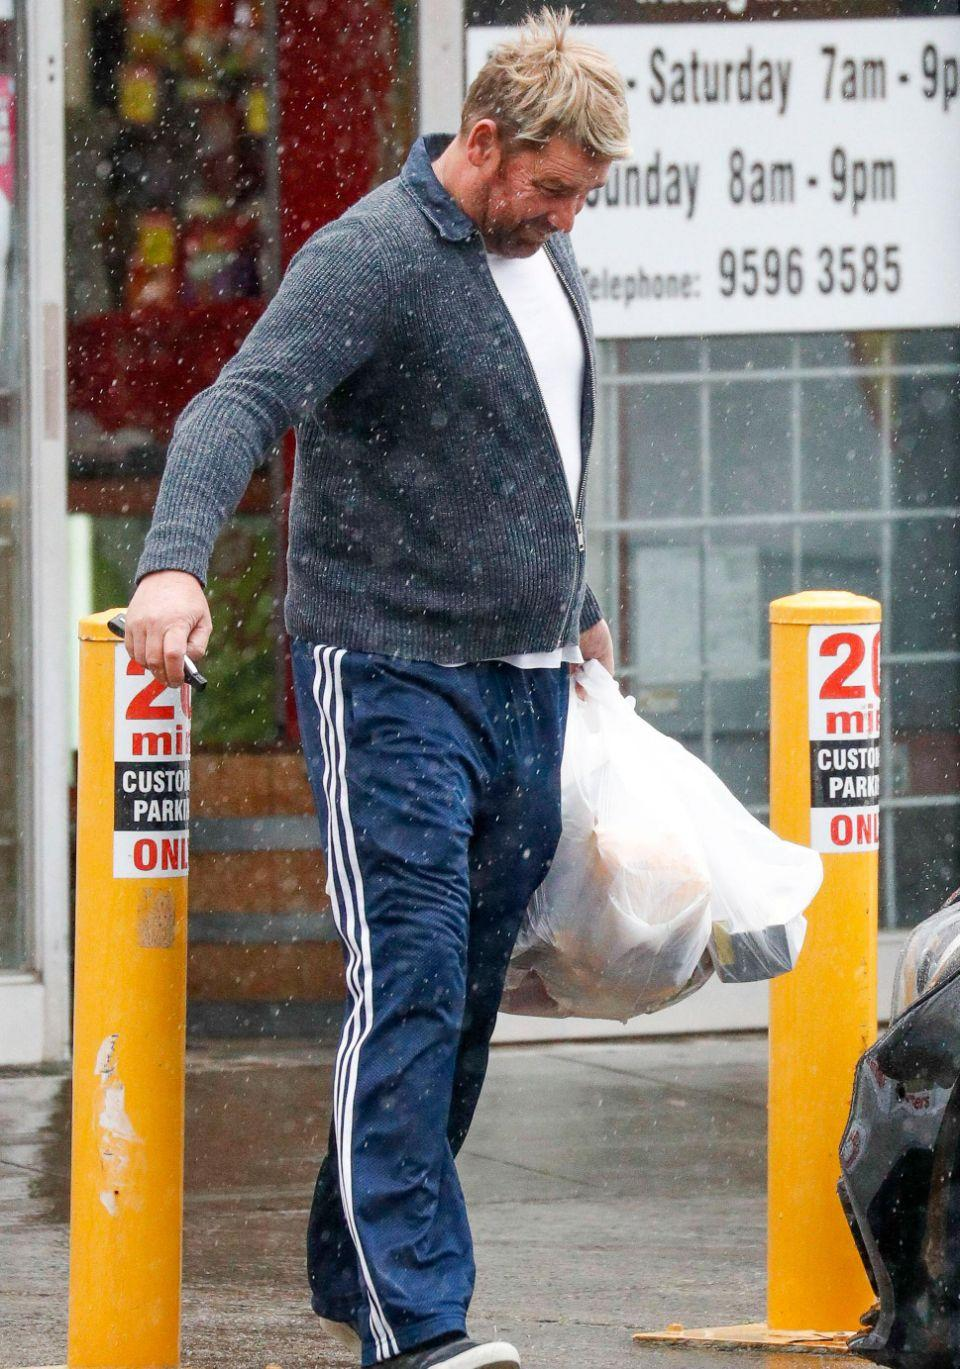 Shane was spotted running some errands in Melbourne over the weekend. Source: Media Mode